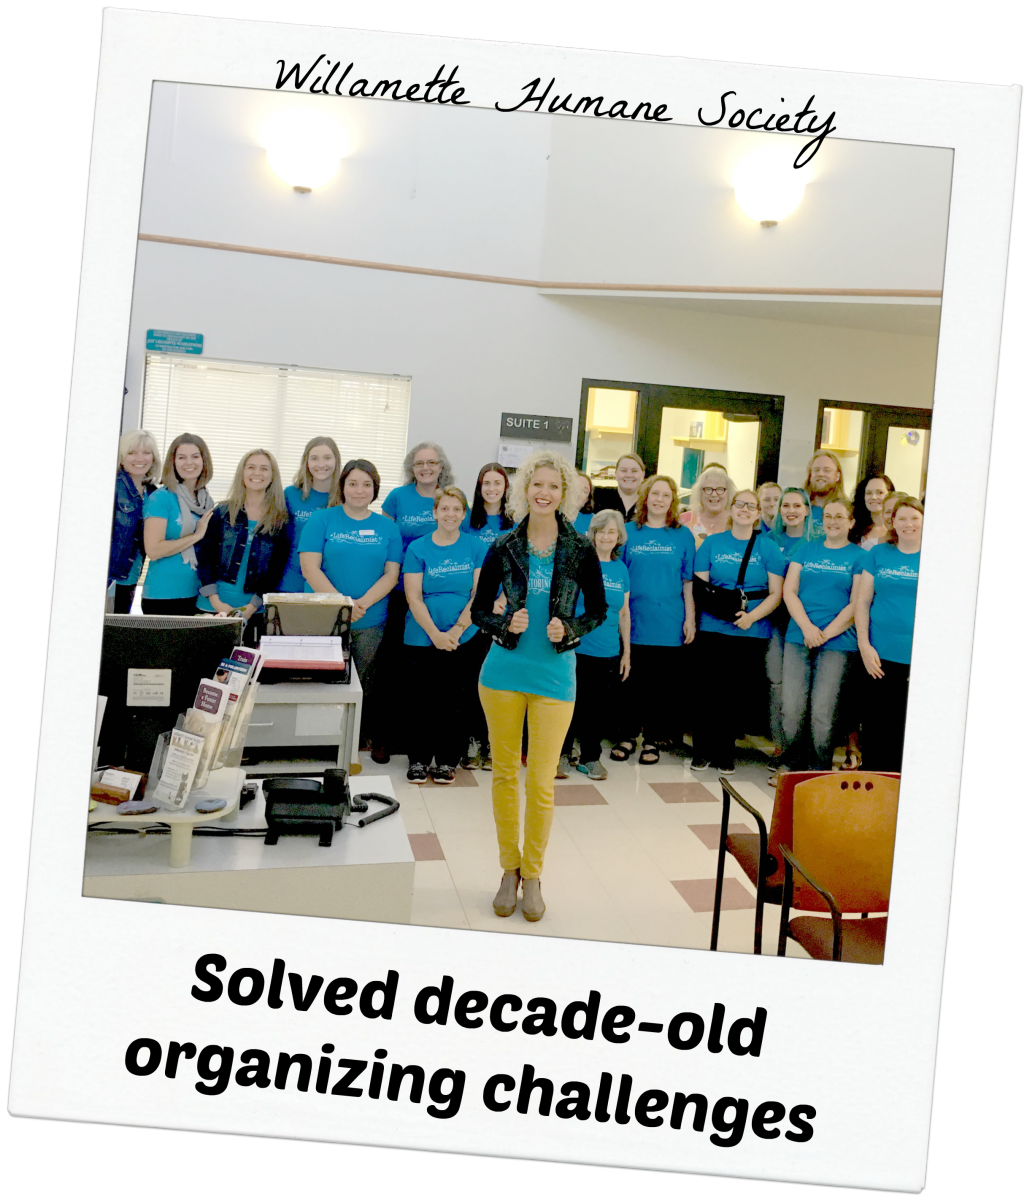 Willamette Humane Society - Solved Decade-Old Organizing Challenges